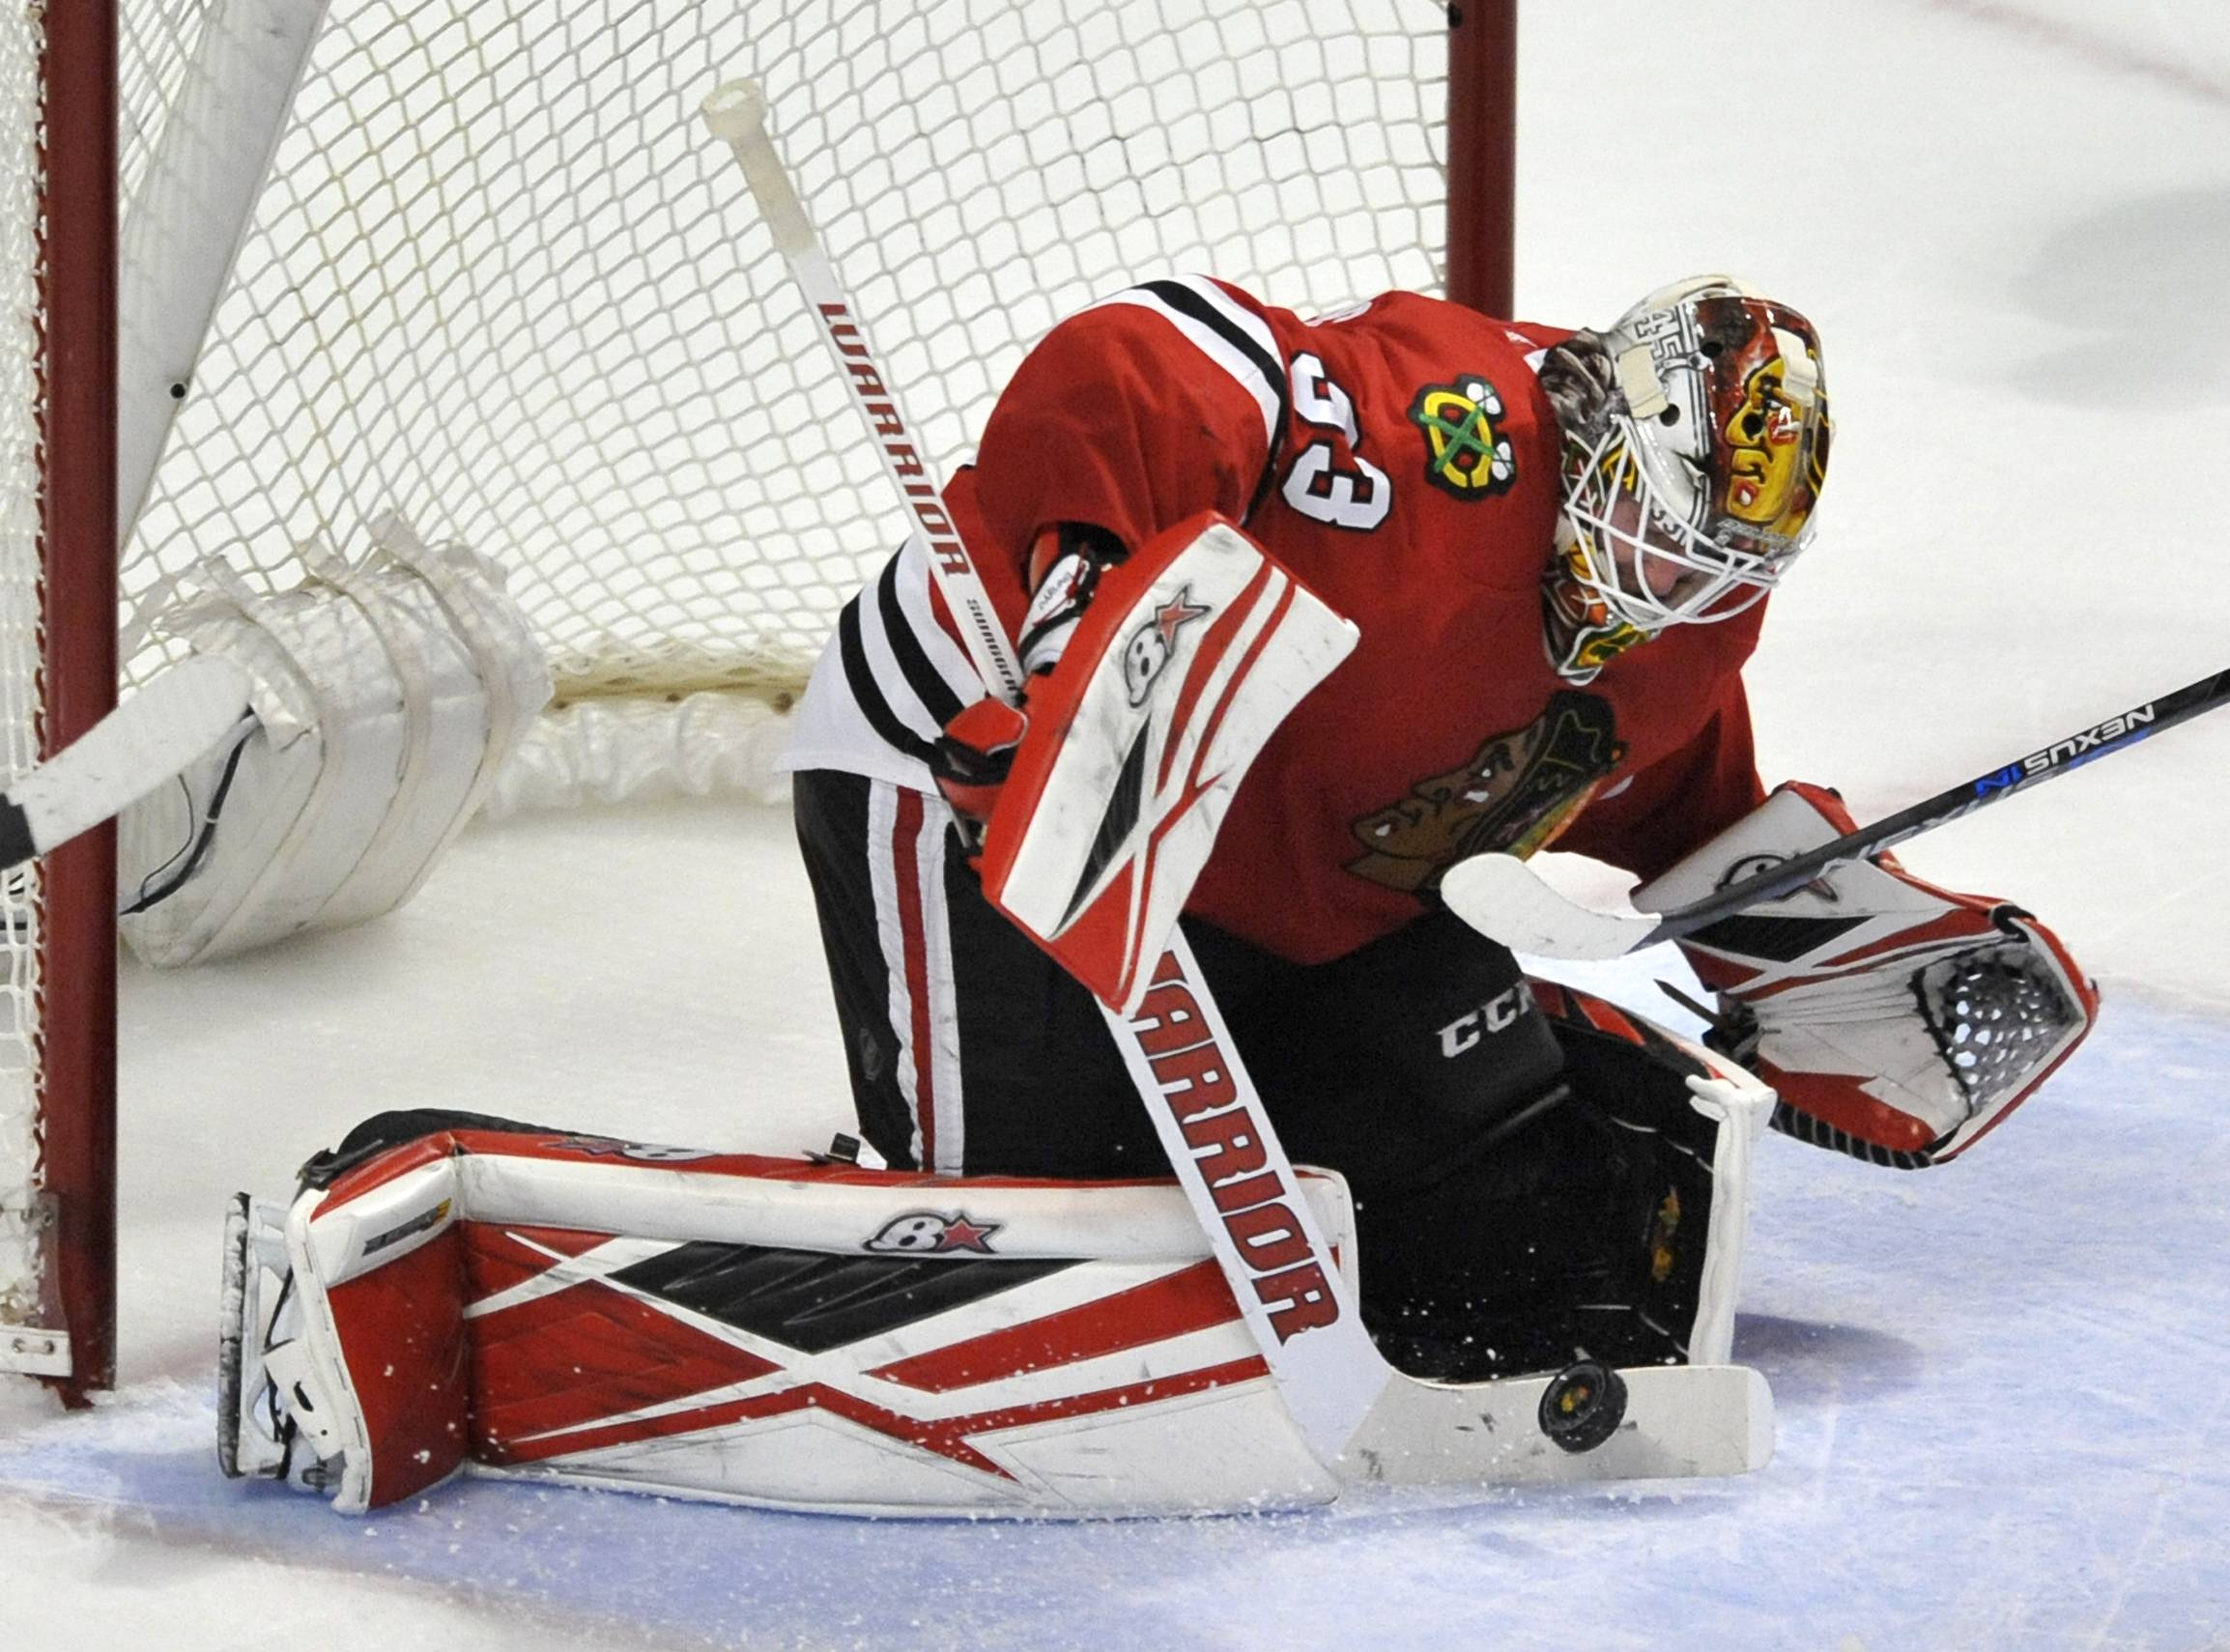 The upcoming season is a big one for Blackhawks backup goaltender Scott Darling as he looks to prove to other teams he has what it takes to become a full-time starter.